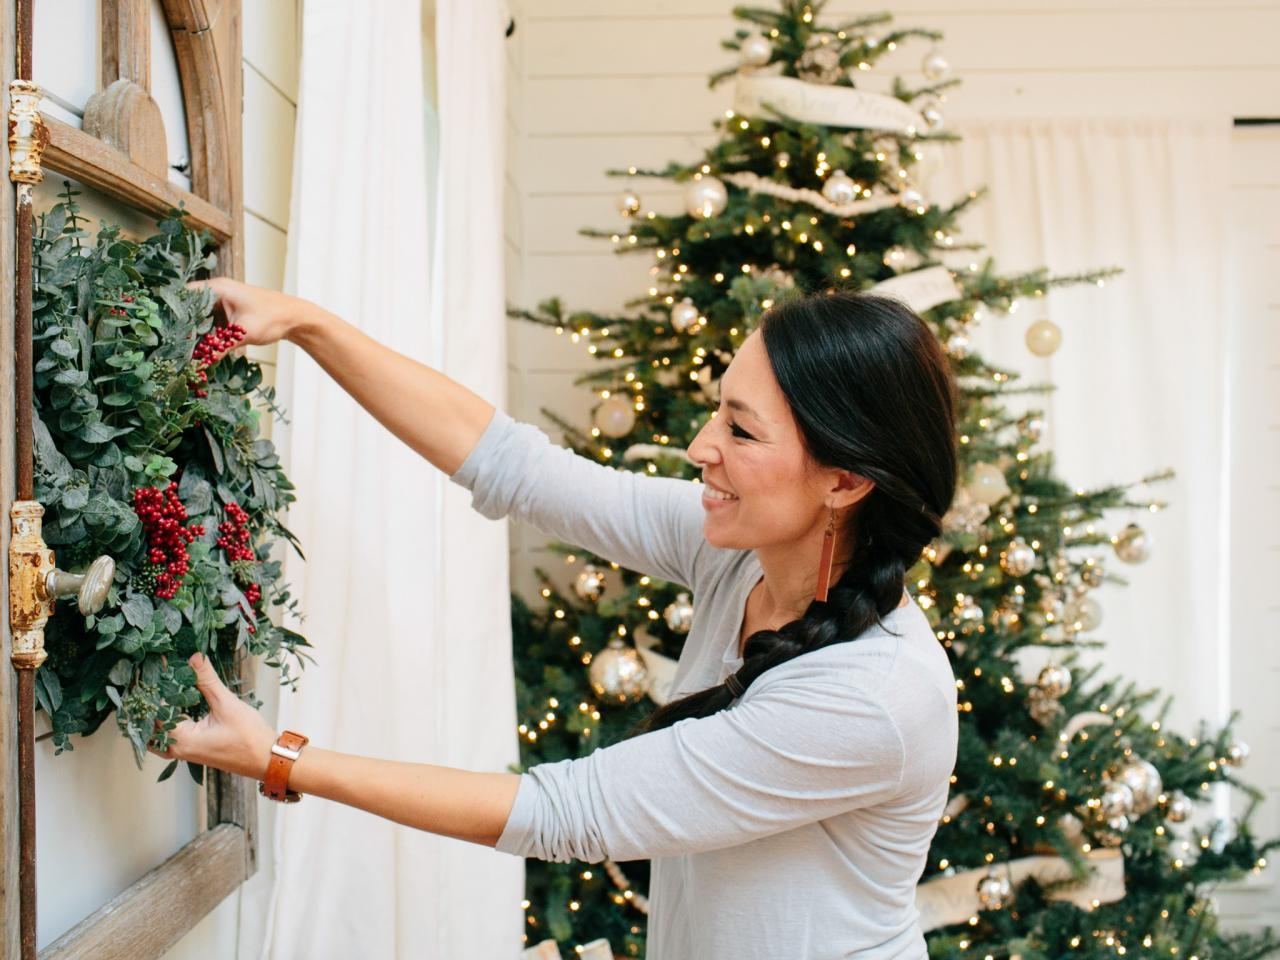 all created joanna gaines farmhouse christmas decor - Joanna Gaines Christmas Decor